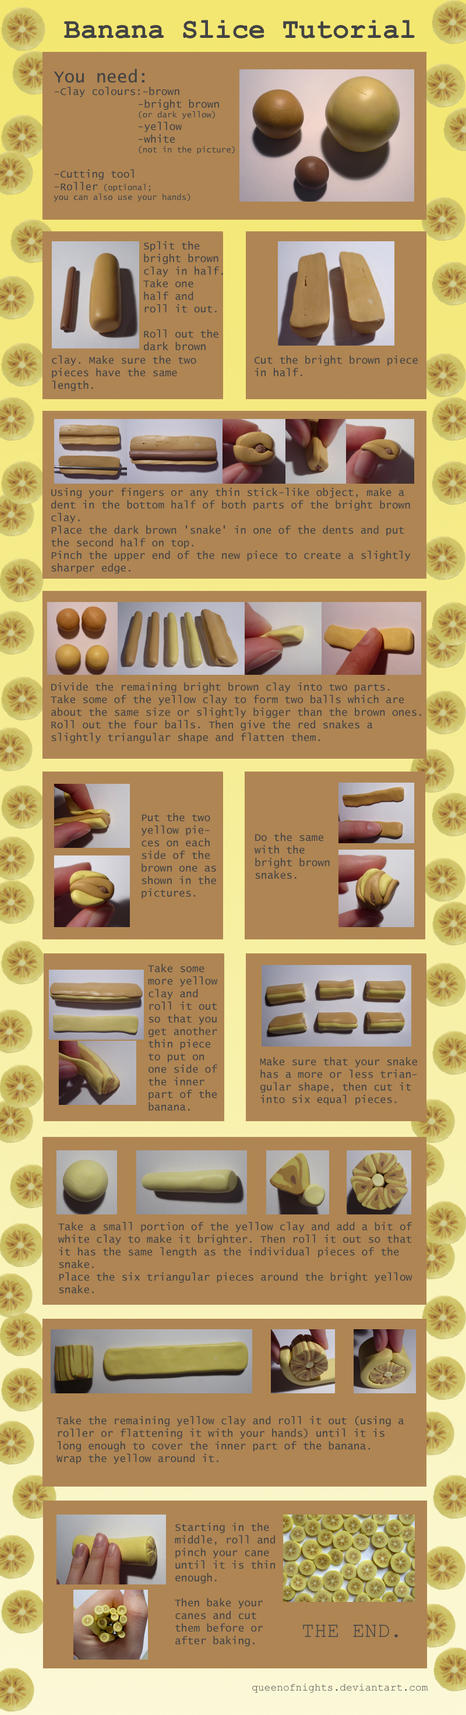 Banana Slice Tutorial by QueEnOfNights